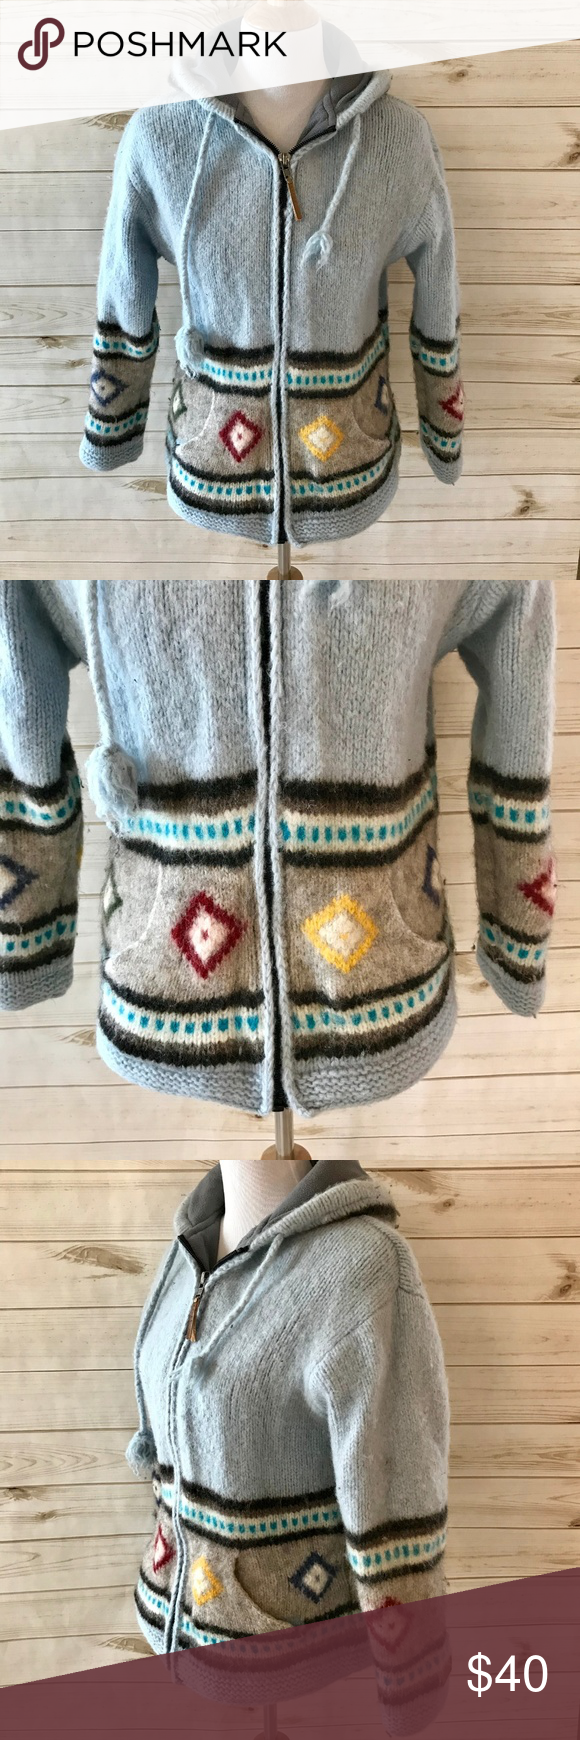 Kyber Outerwear 100 Wool Hooded Jacket This Is Moderately Used With Some Pilling Armpit To Armpit Measures 18 Sleeve Length Hooded Jacket Outerwear Jackets [ 1740 x 580 Pixel ]